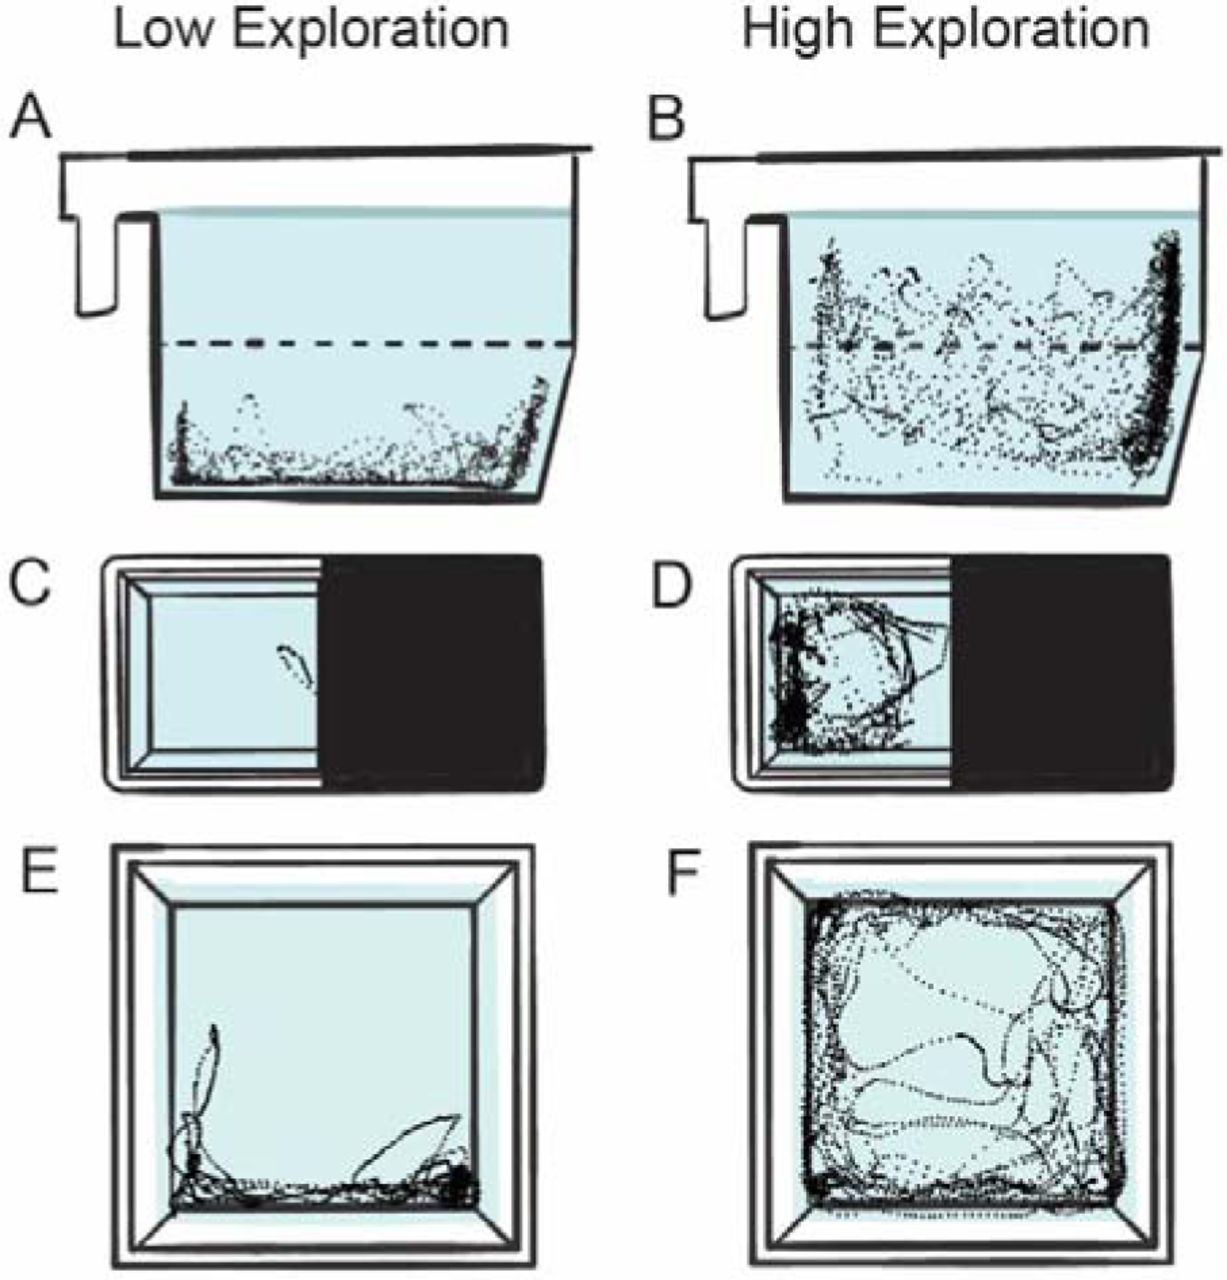 Exploratory behavior is associated with microhabitat and